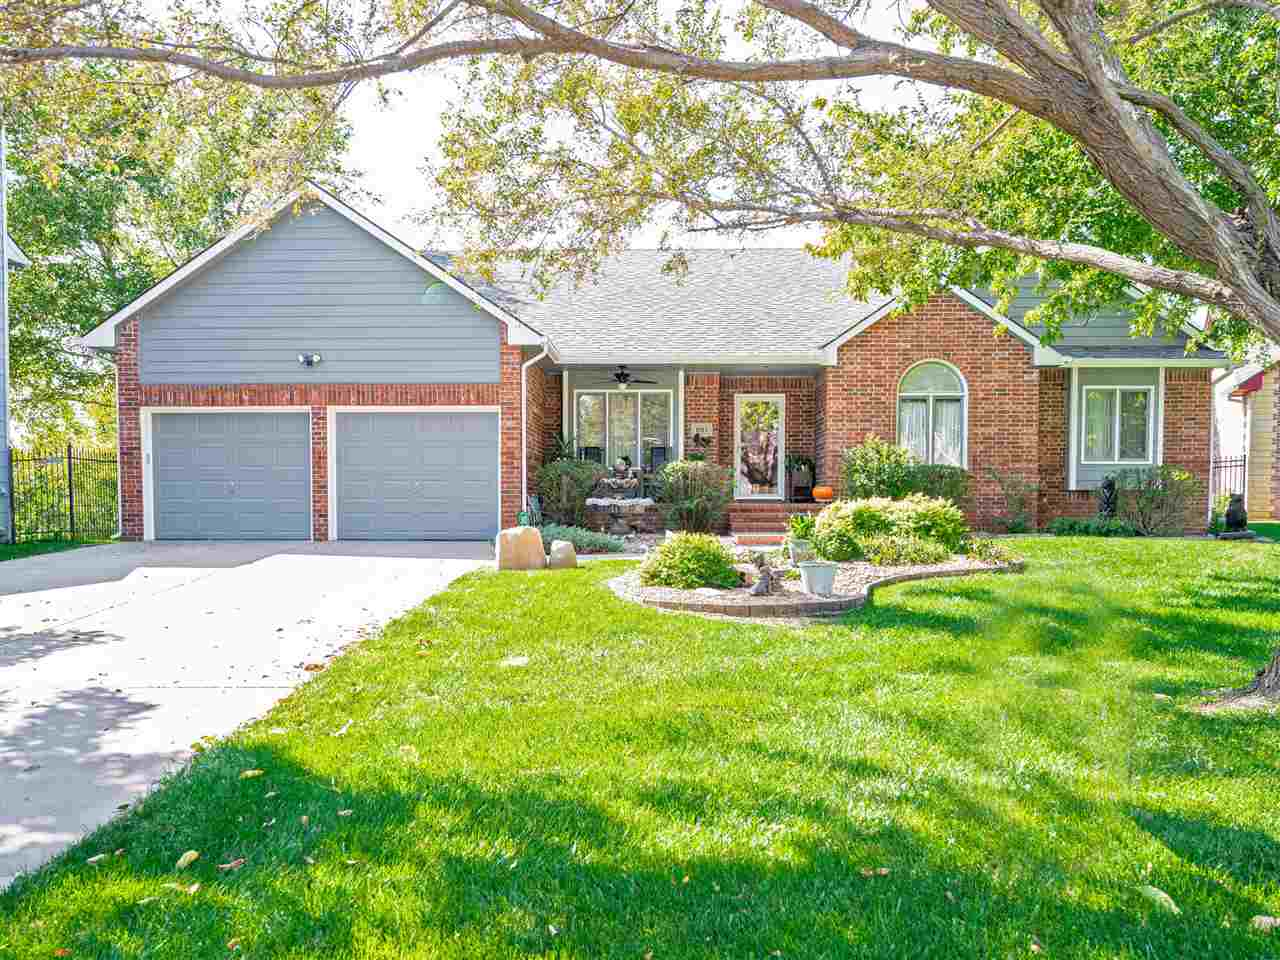 This one owner lake front home in the Goddard school district is a MUST SEE to appreciate! The owner